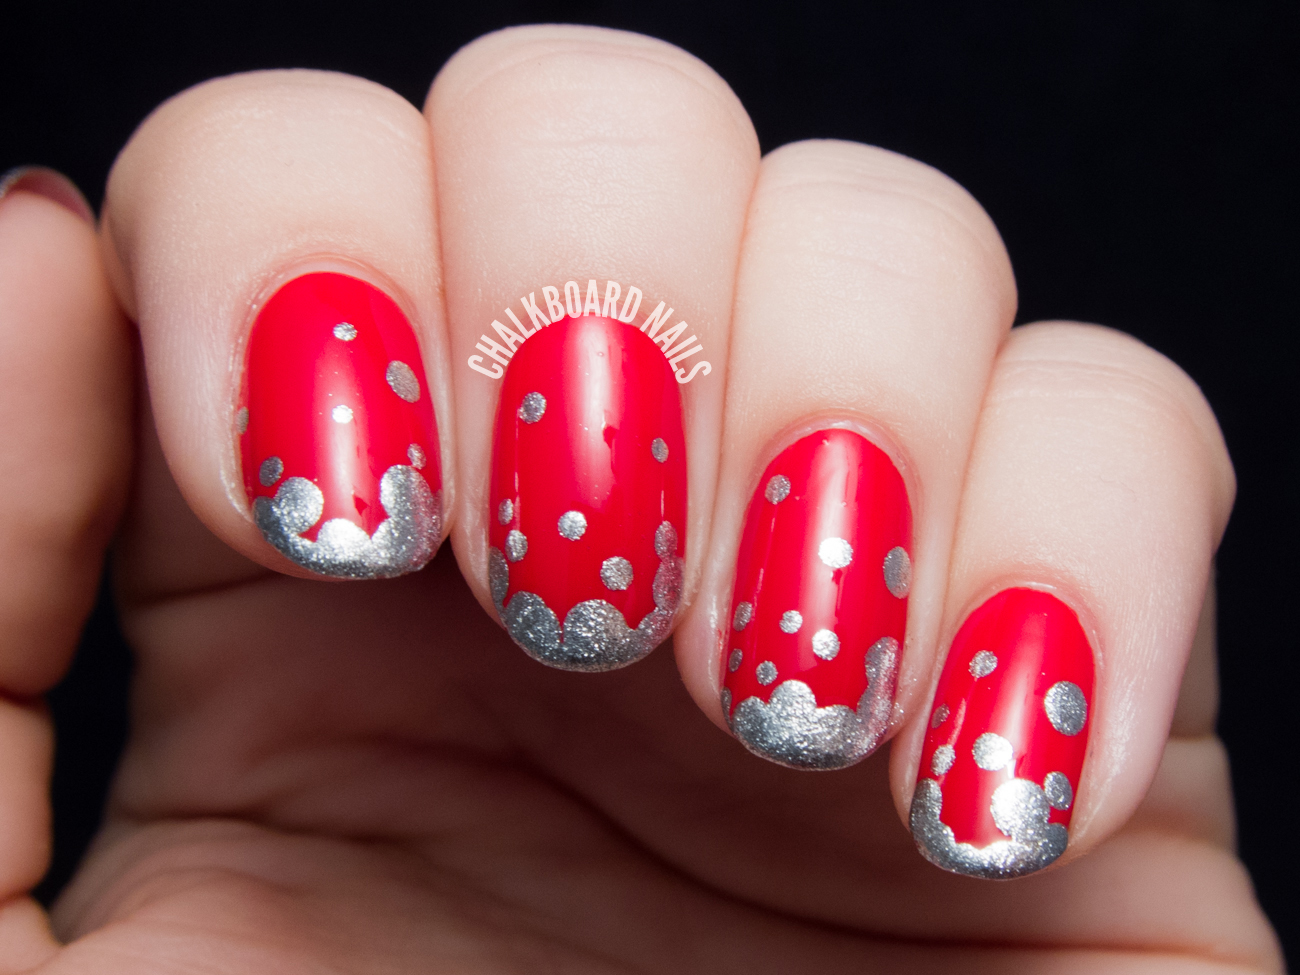 Fizzy French - OPI Coca-Cola Nail Art - Nail Courses Finder